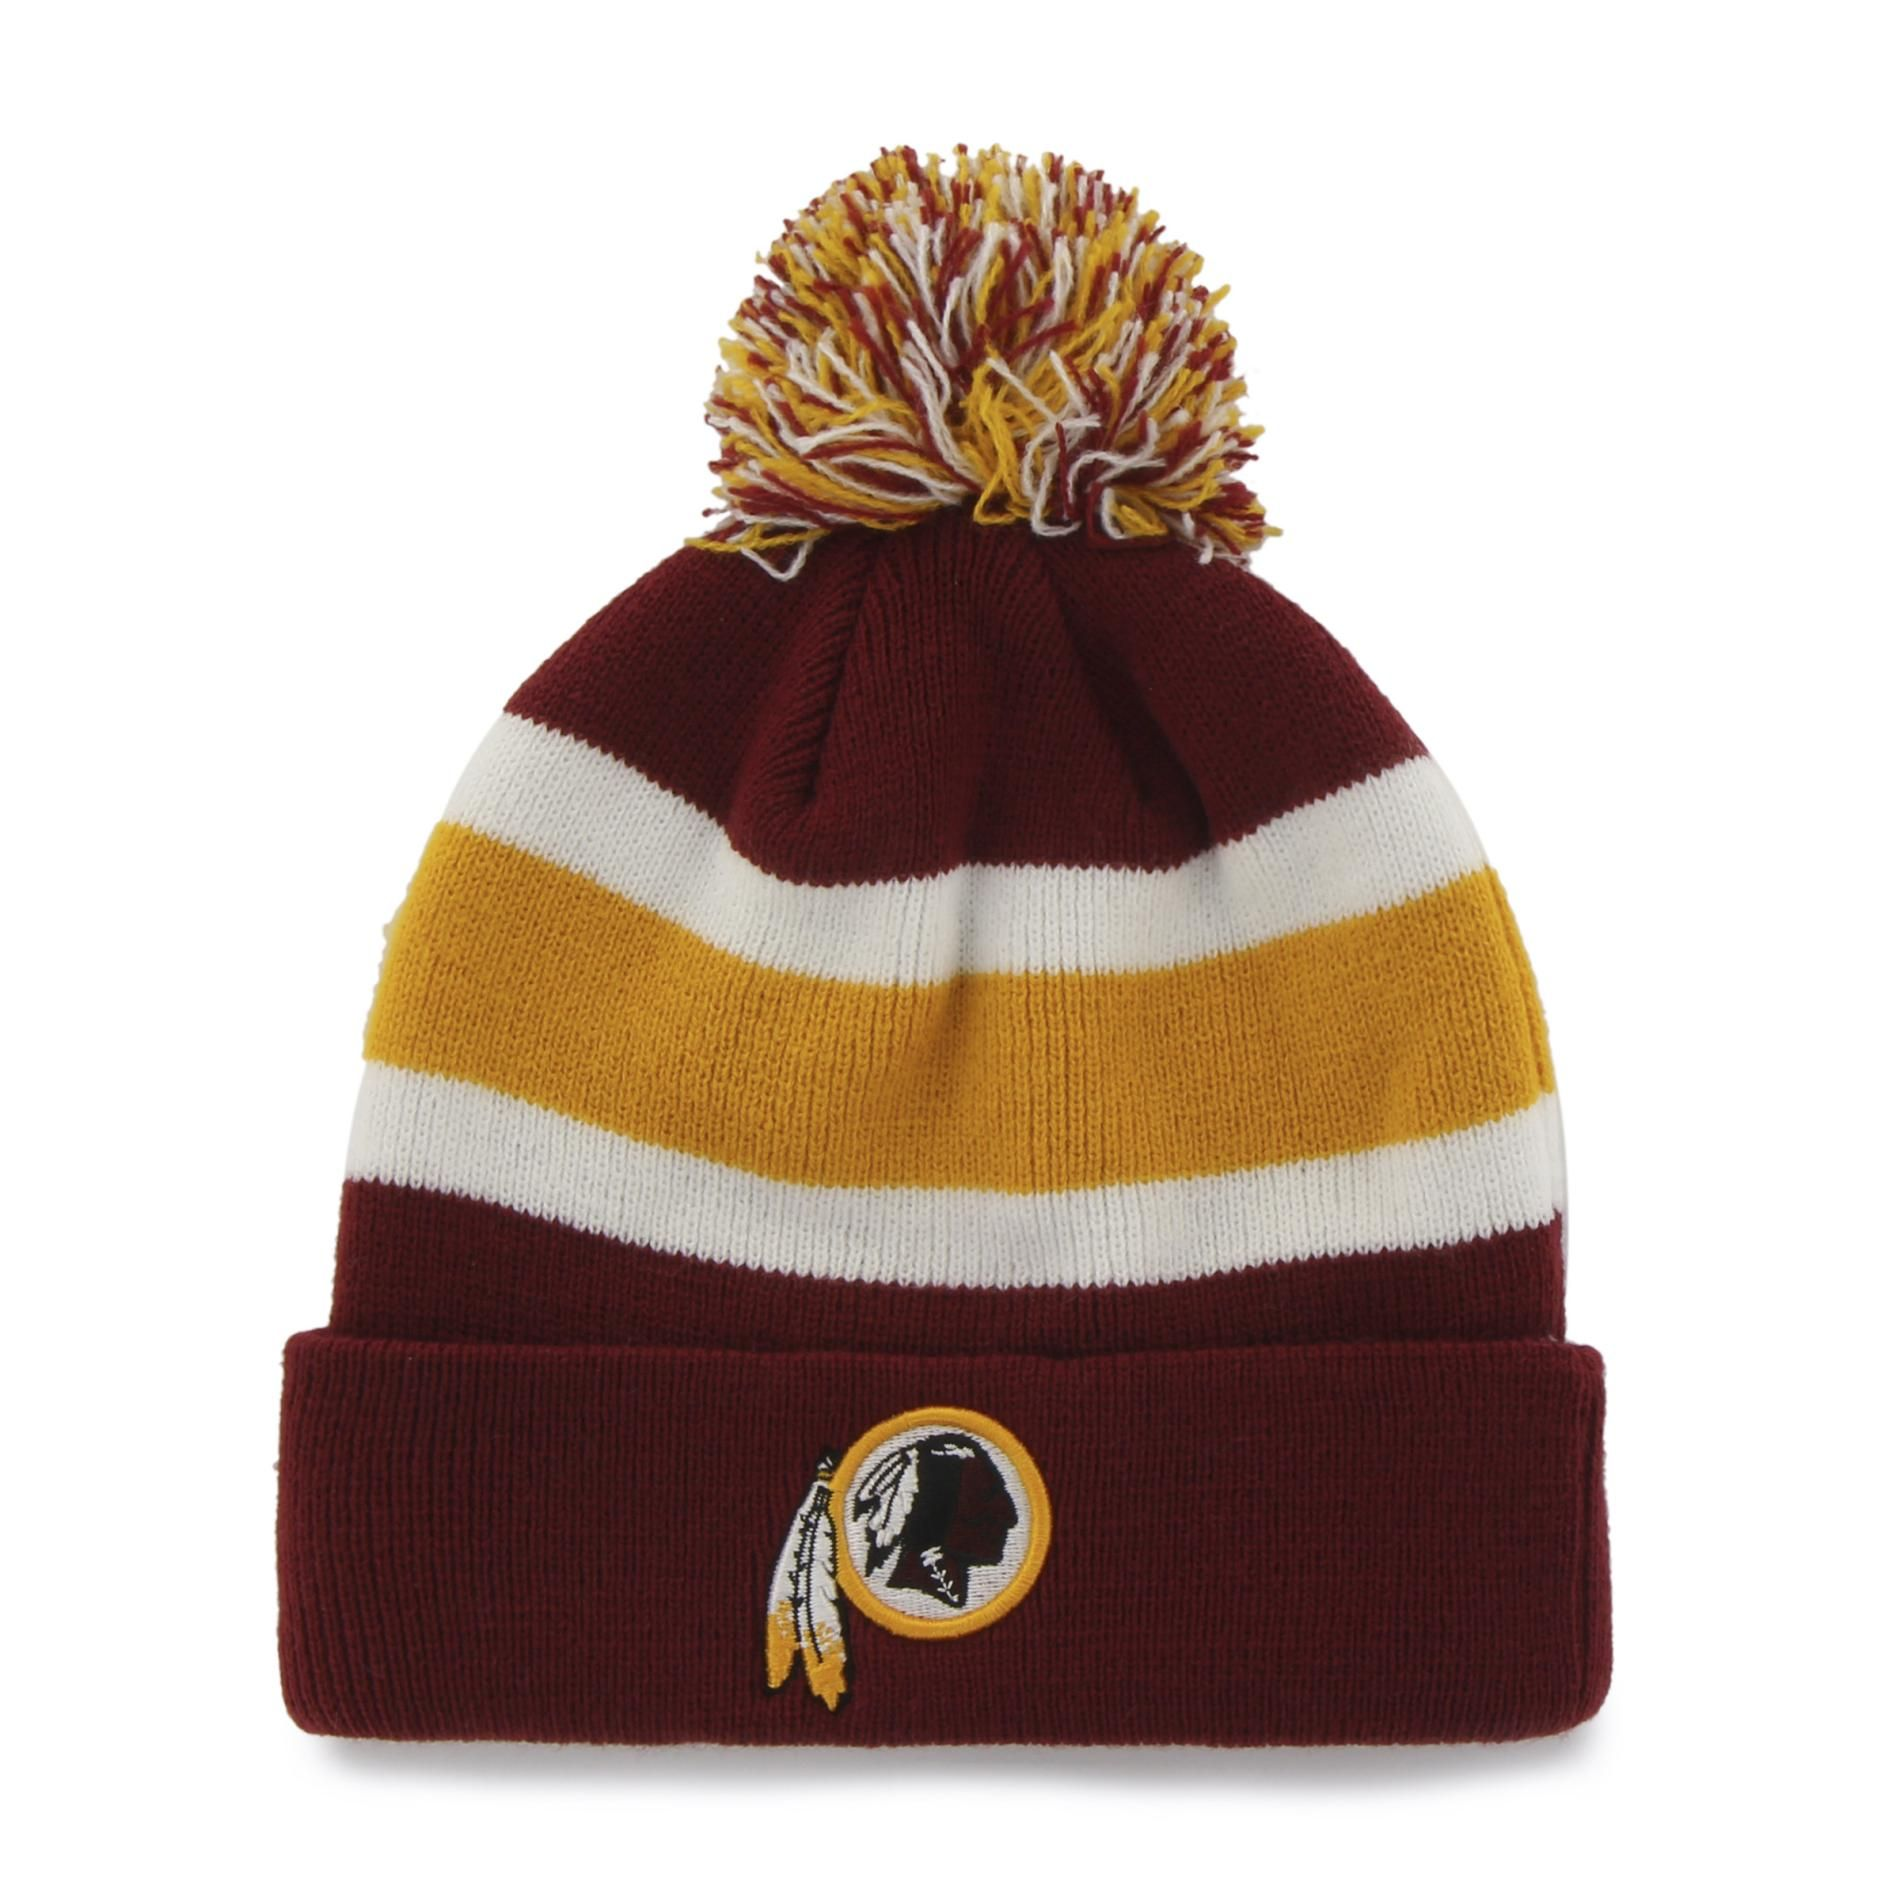 Show team pride while you keep your head warm with this  strong Washington  Redskins breakaway beanie from the NFL  strong . Crafted from stretchy rib  knit ... 23f4b0b0b